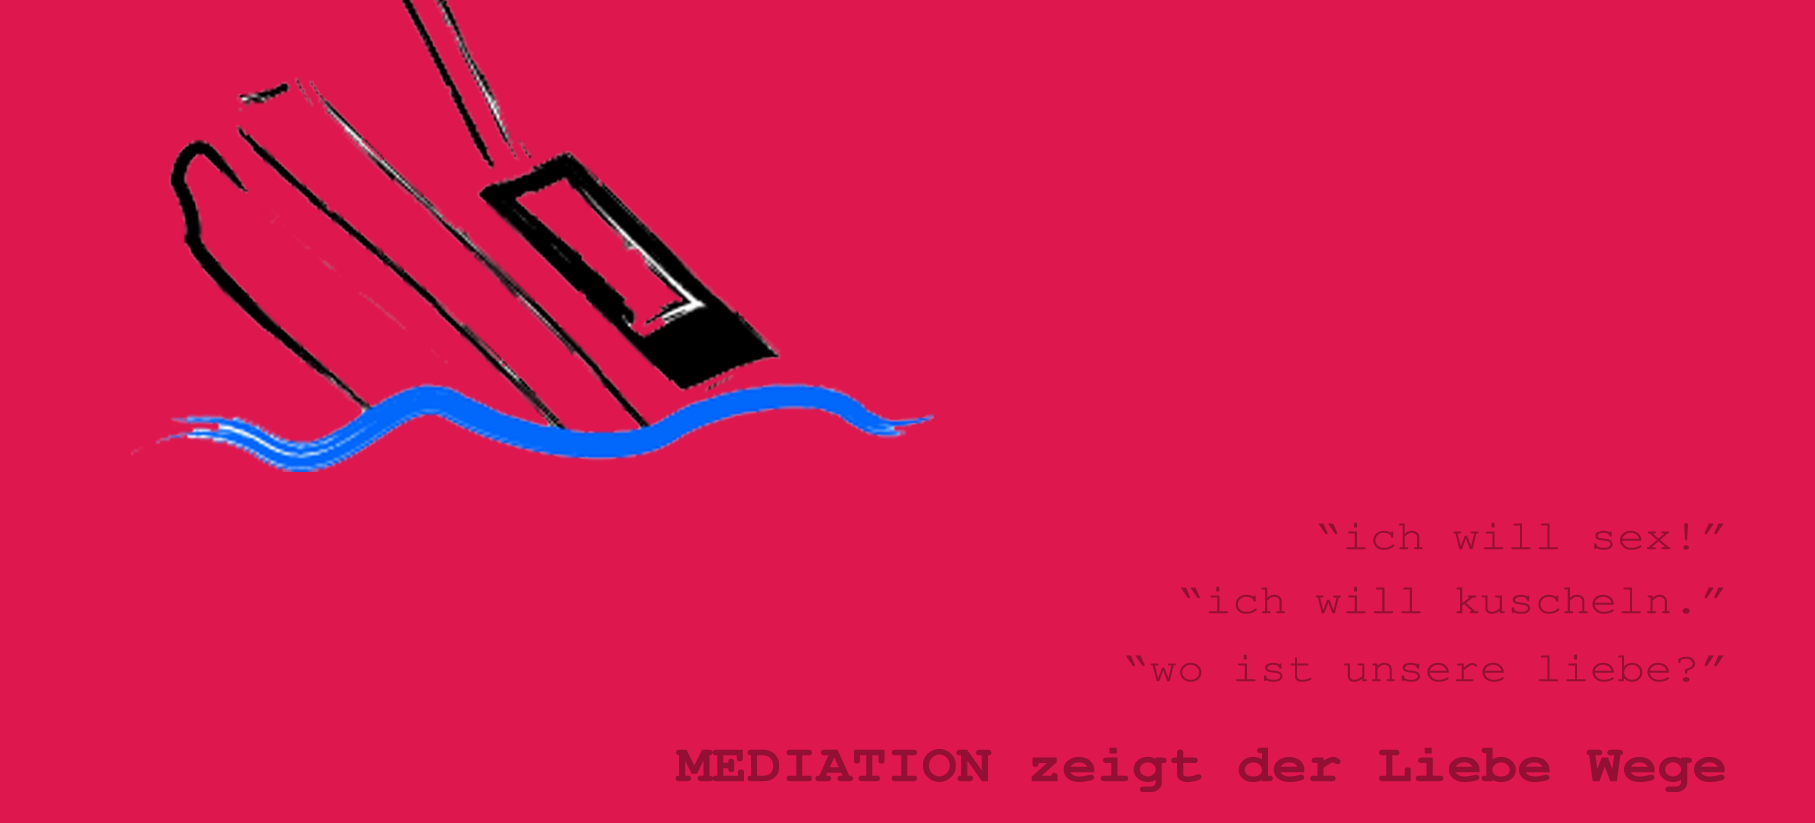 mediation_paare_rot